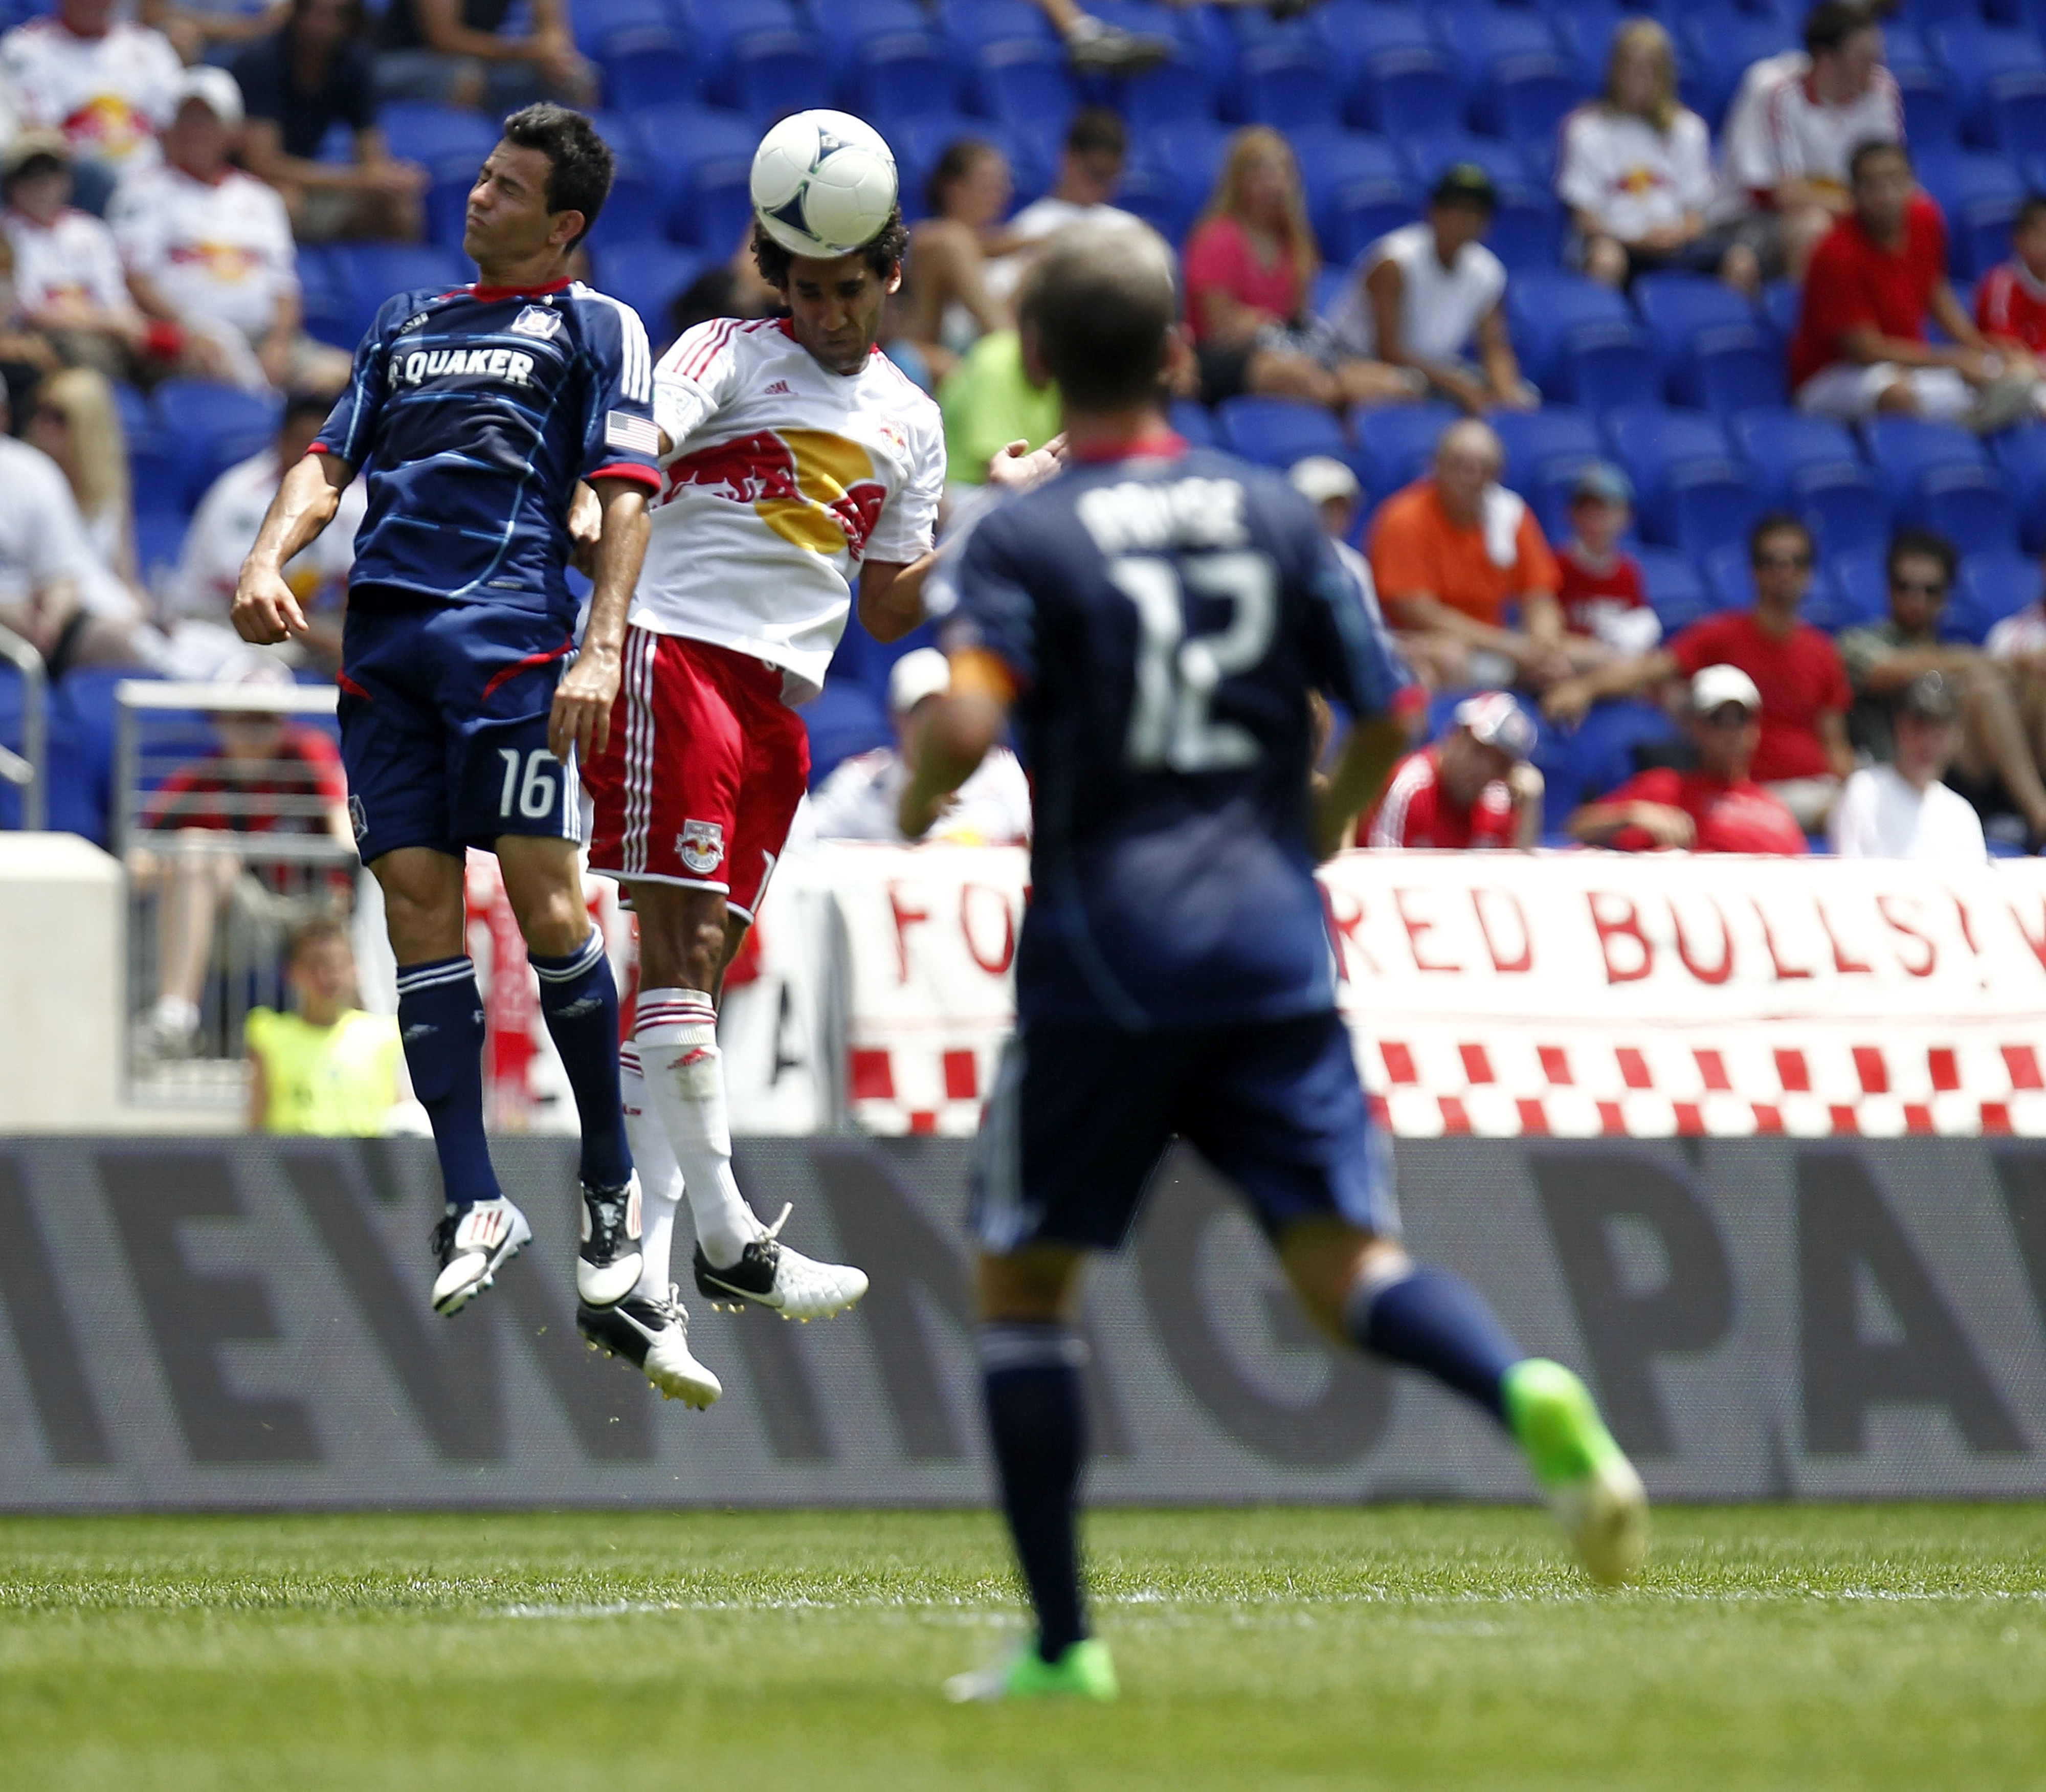 HARRISON, NJ - JULY 18:  Mehdi Ballouchy #10 of the New York Red Bulls and Marco Pappa #16 of the Chicago Fire fight for the ball during their match at Red Bull Arena on July 18, 2012 in Harrison, New Jersey.  (Photo by Jeff Zelevansky/Getty Images)